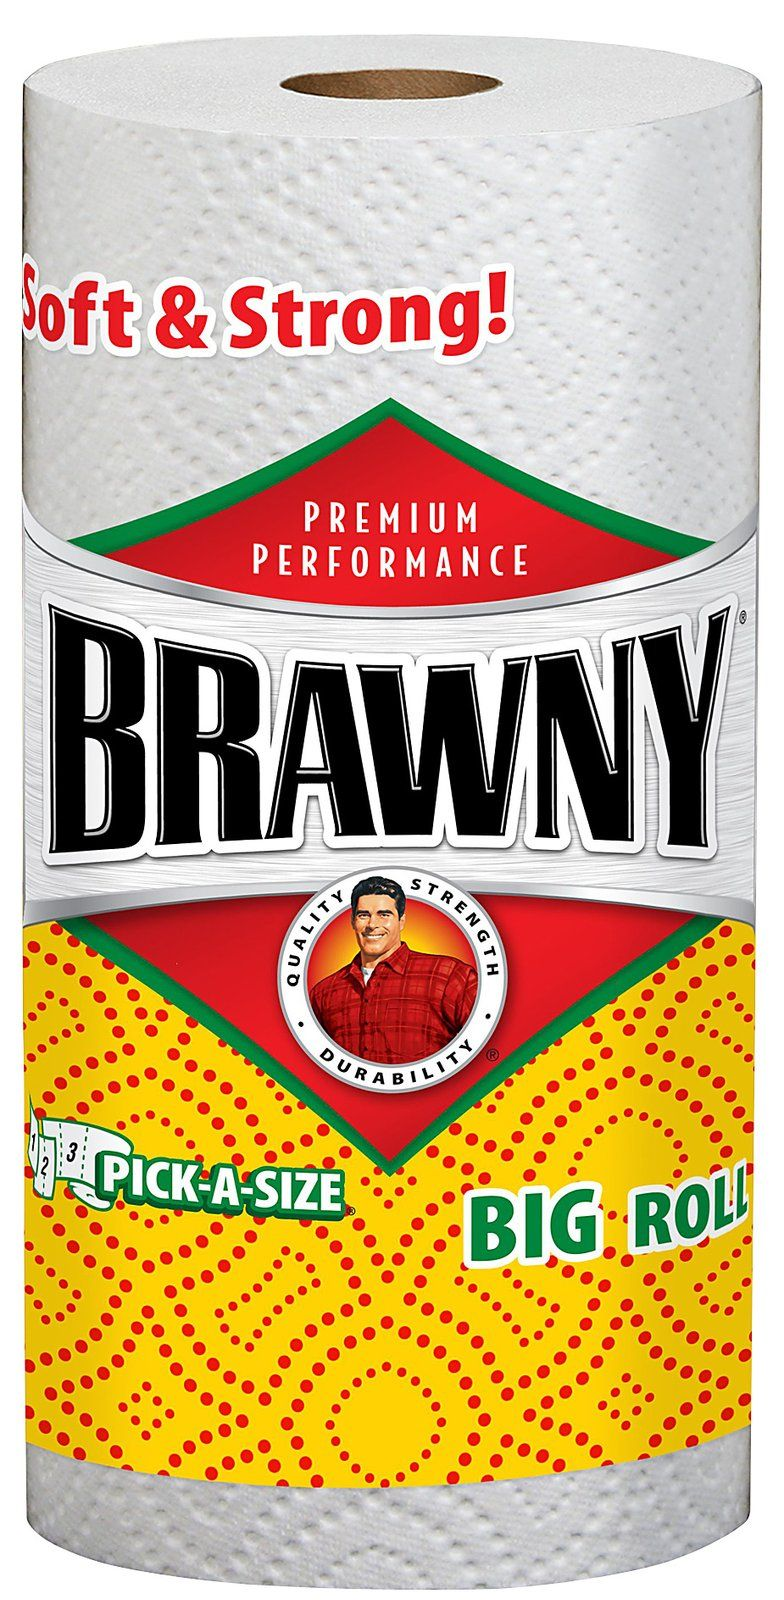 photograph regarding Brawny Printable Coupons titled Kroger: 2 No cost Brawny Paper Towels! (At the time Coupon) Discount coupons